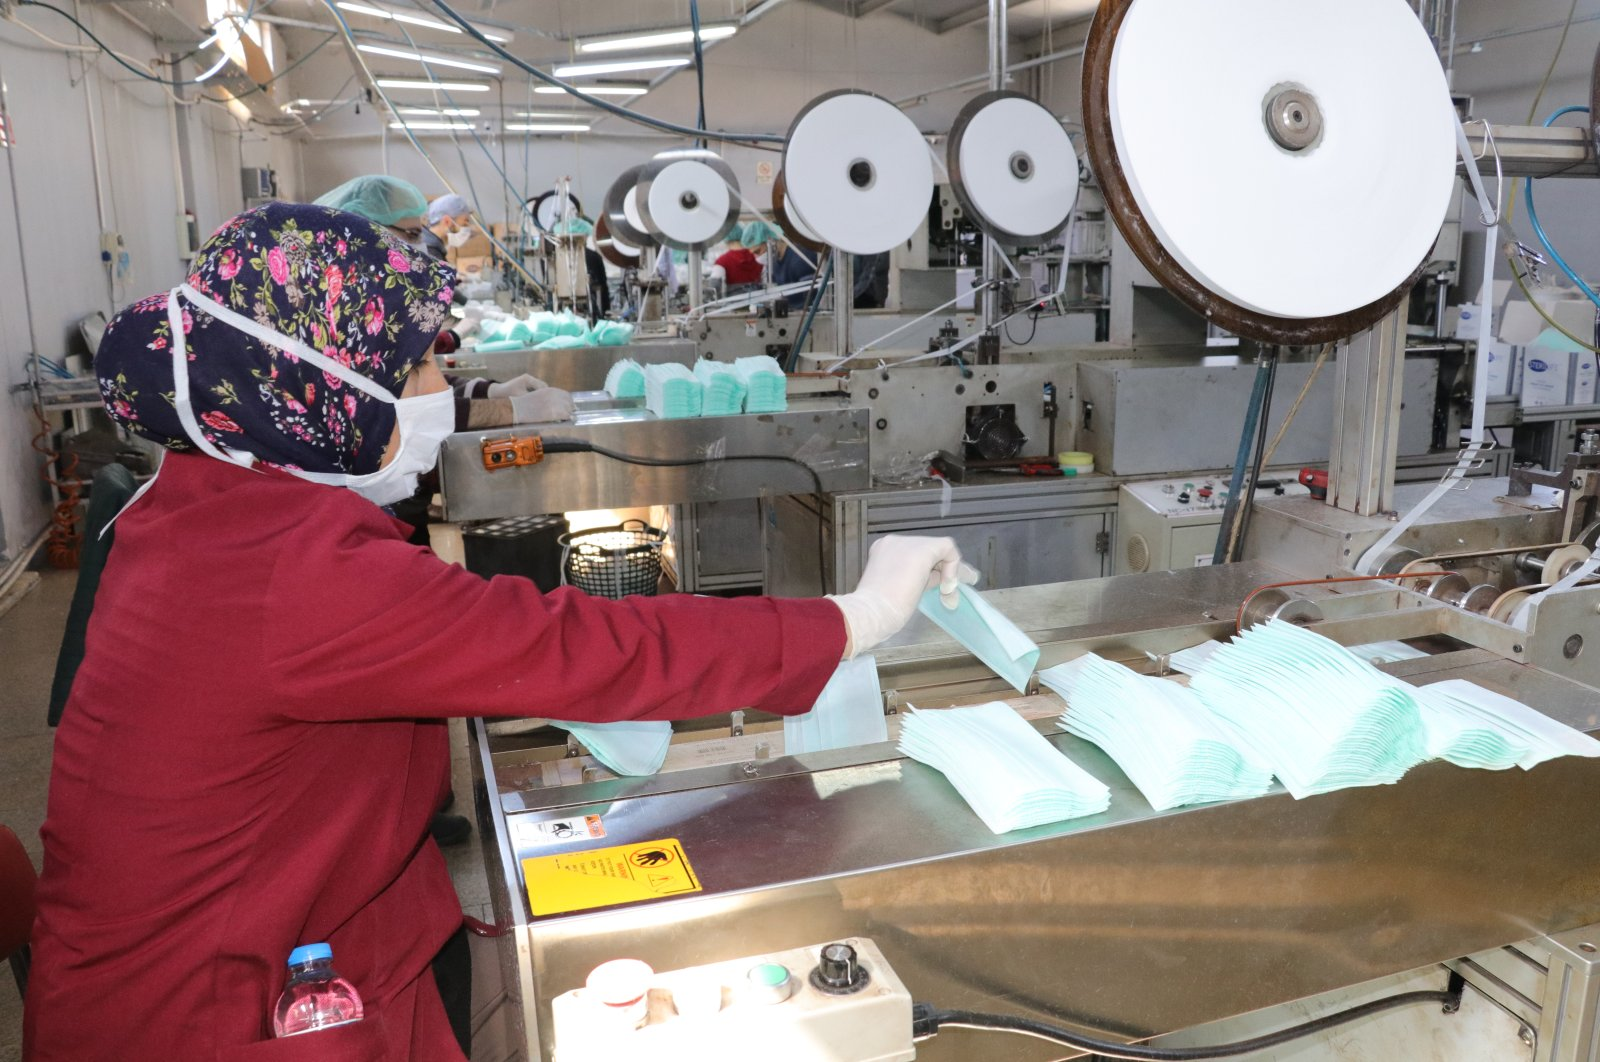 Workers are seen in a firm that manufactures health supplies in Turkey's central province of Yozgat, Wednesday, March 25, 2020. (AA Photo)